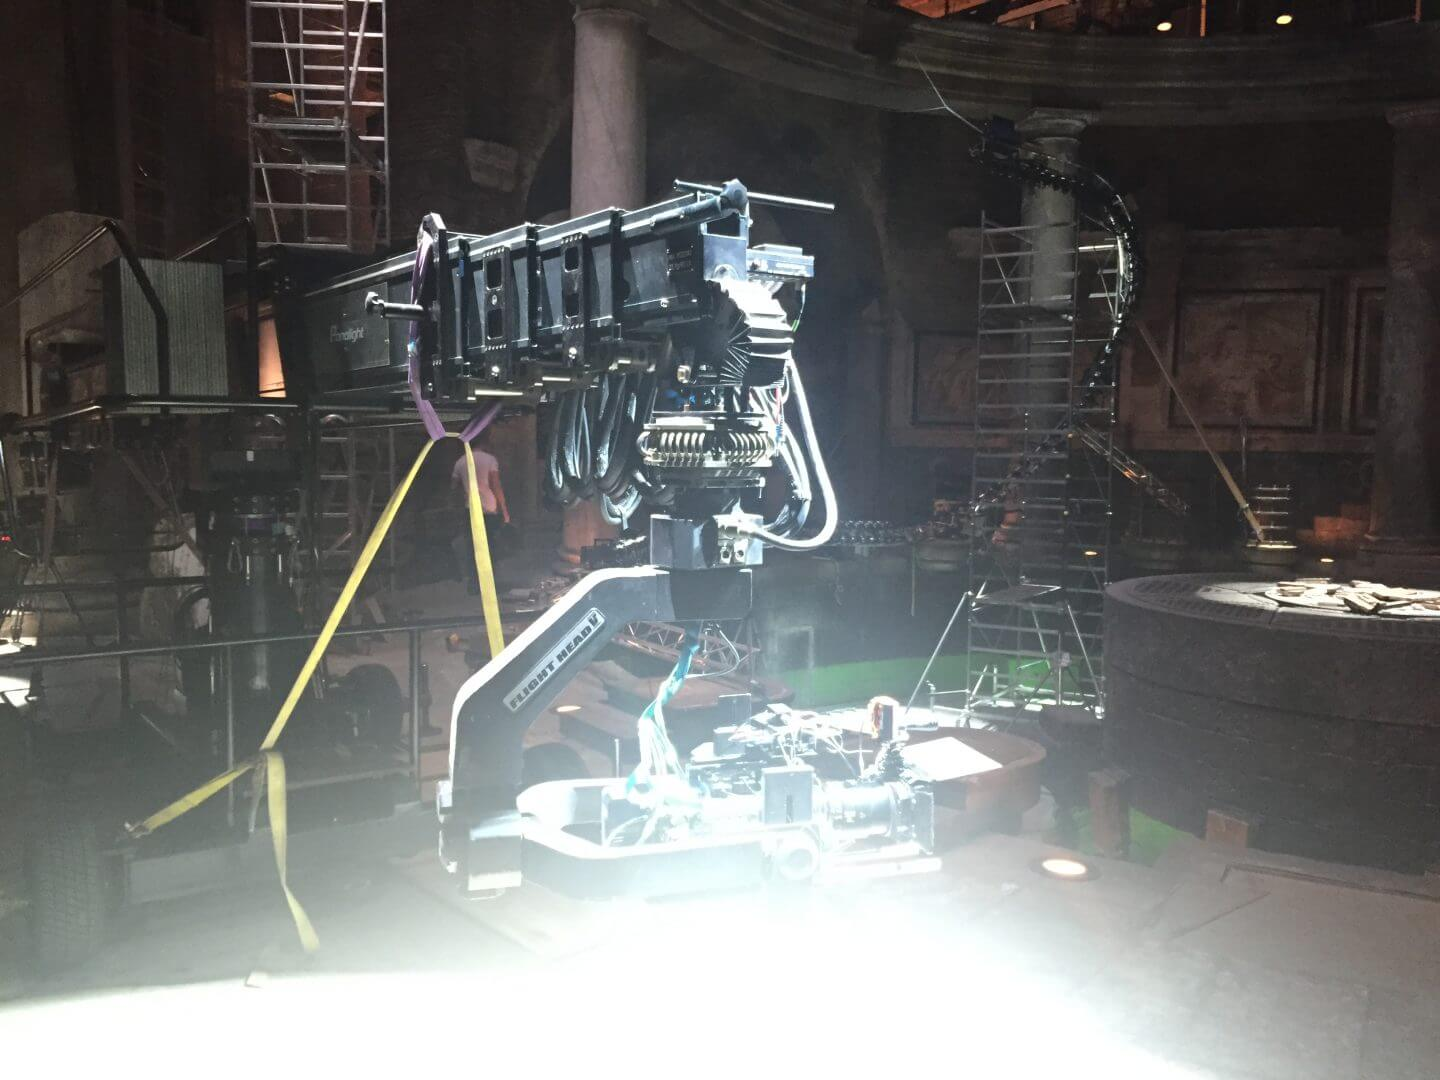 Bullet Time system on set at Zoolander 2 studio